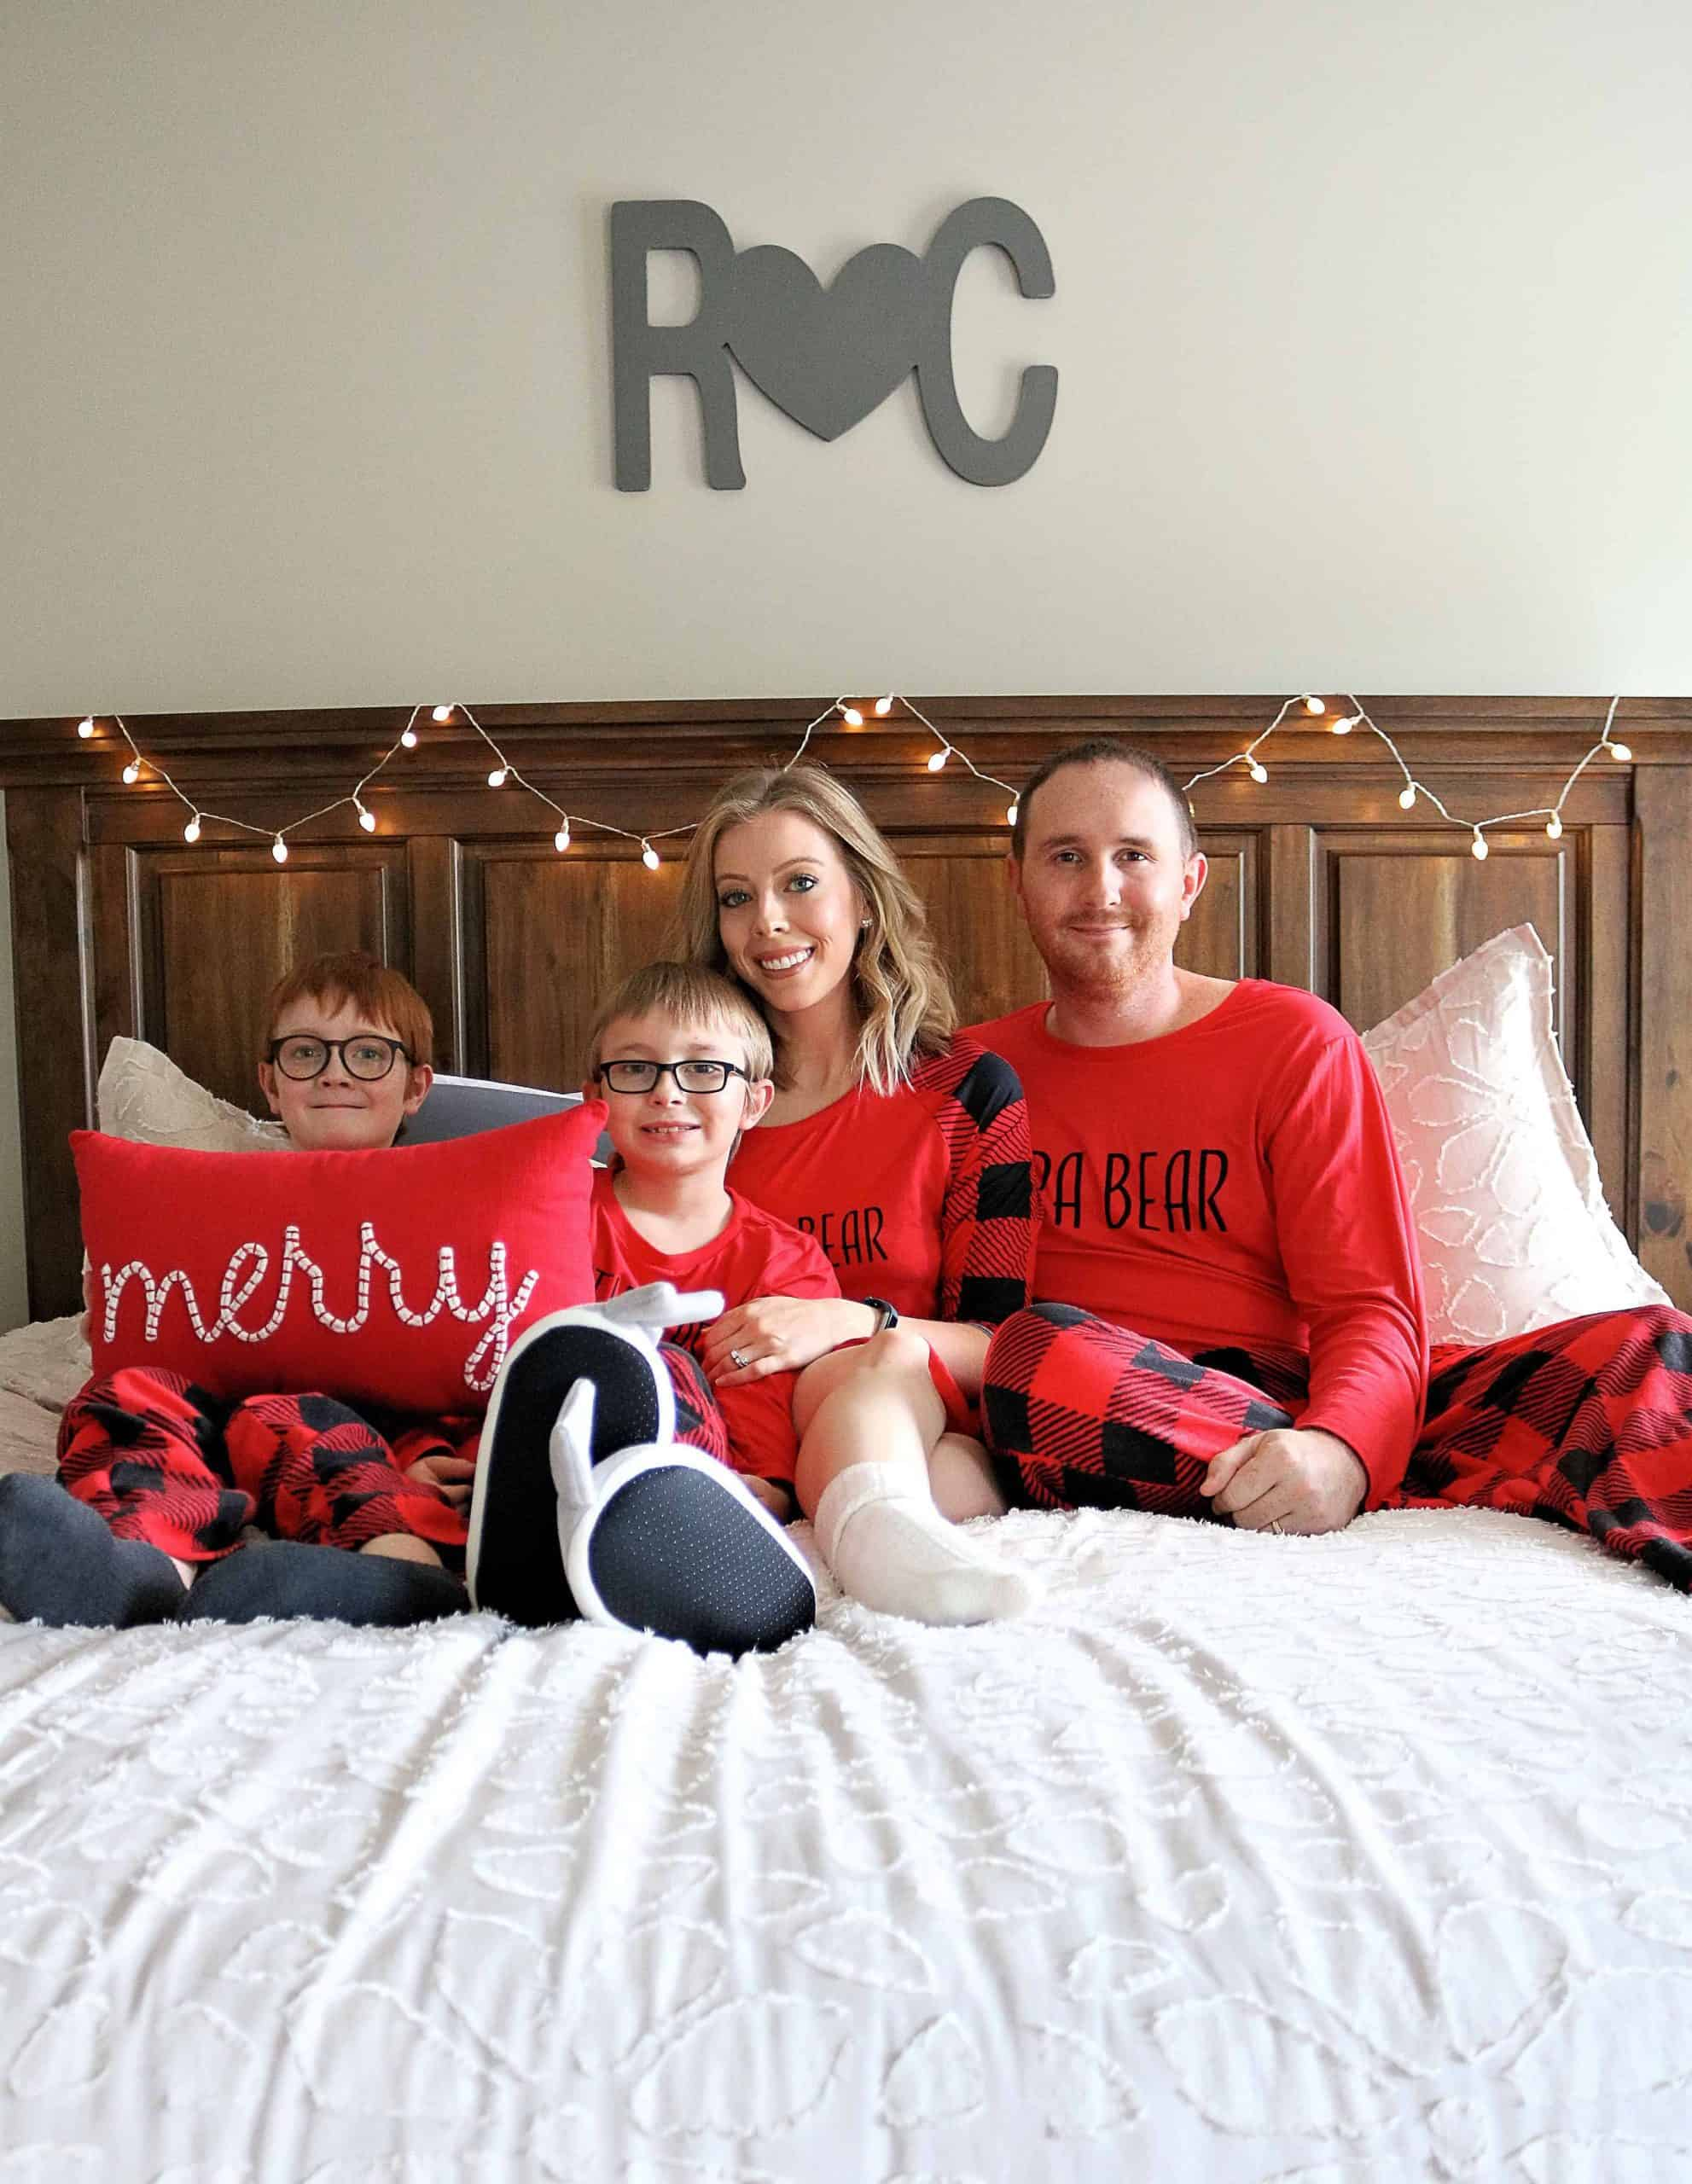 Diy Family Christmas Photos Cute Easy Ideas Kindly Unspoken